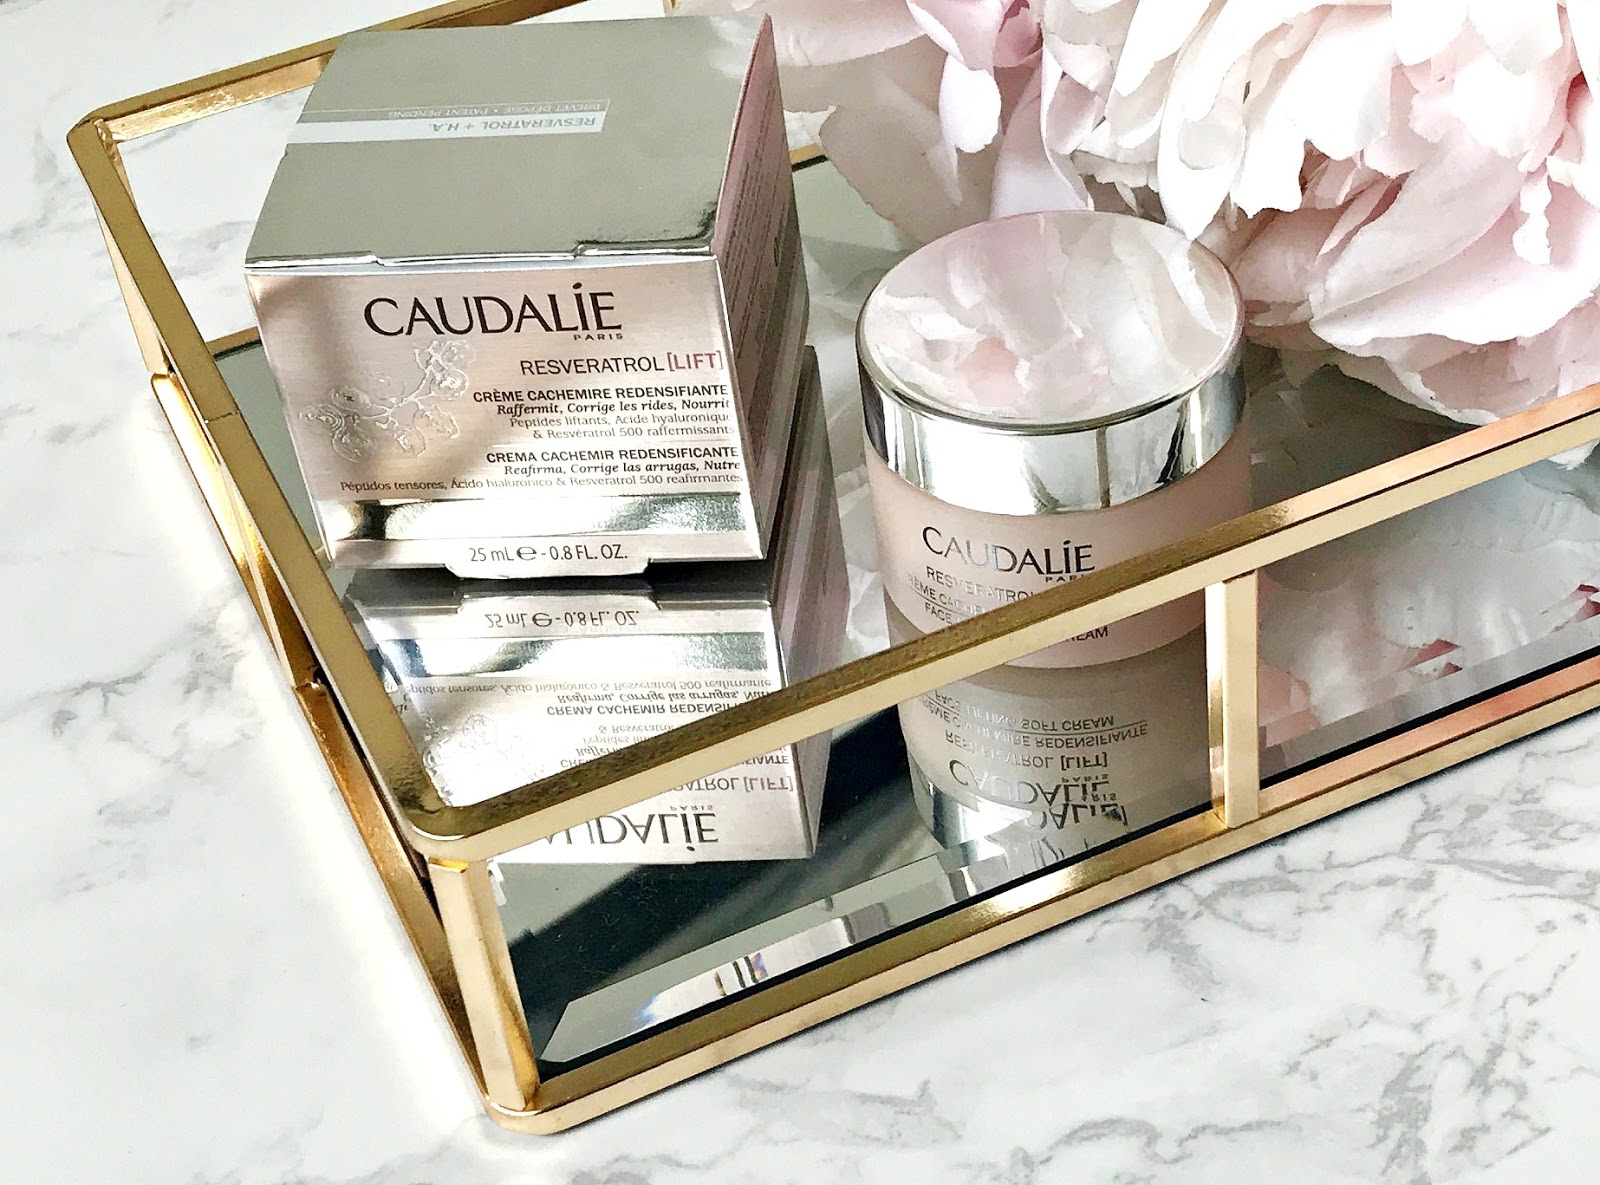 Caudalie Resveratrol Lift Review